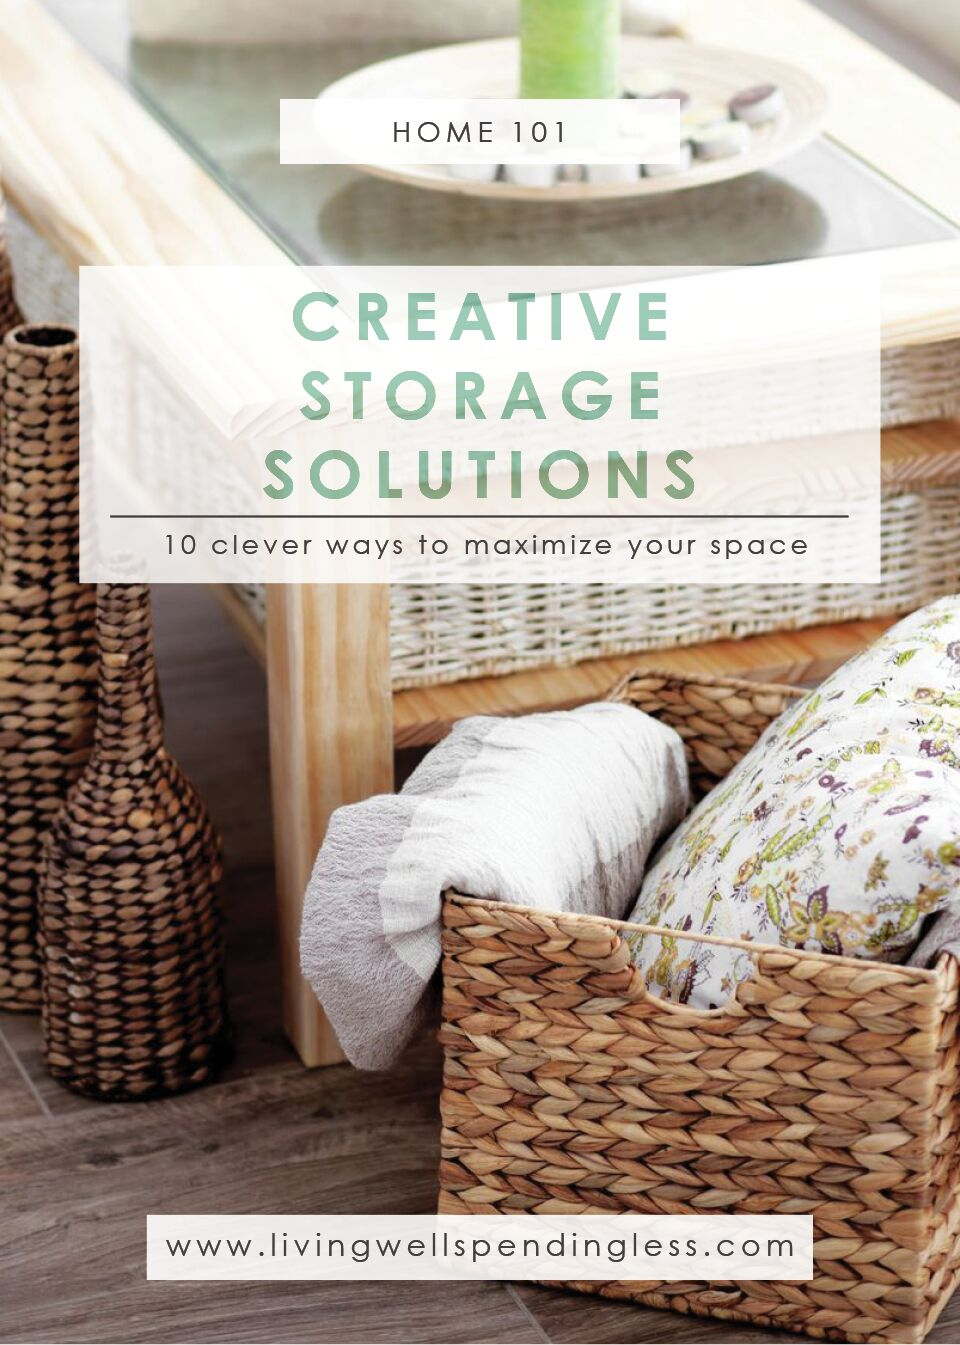 Creative Storage Solutions | Cleaning U0026 Organizing | Home Decluttering |  Clever Space Saving Solutions